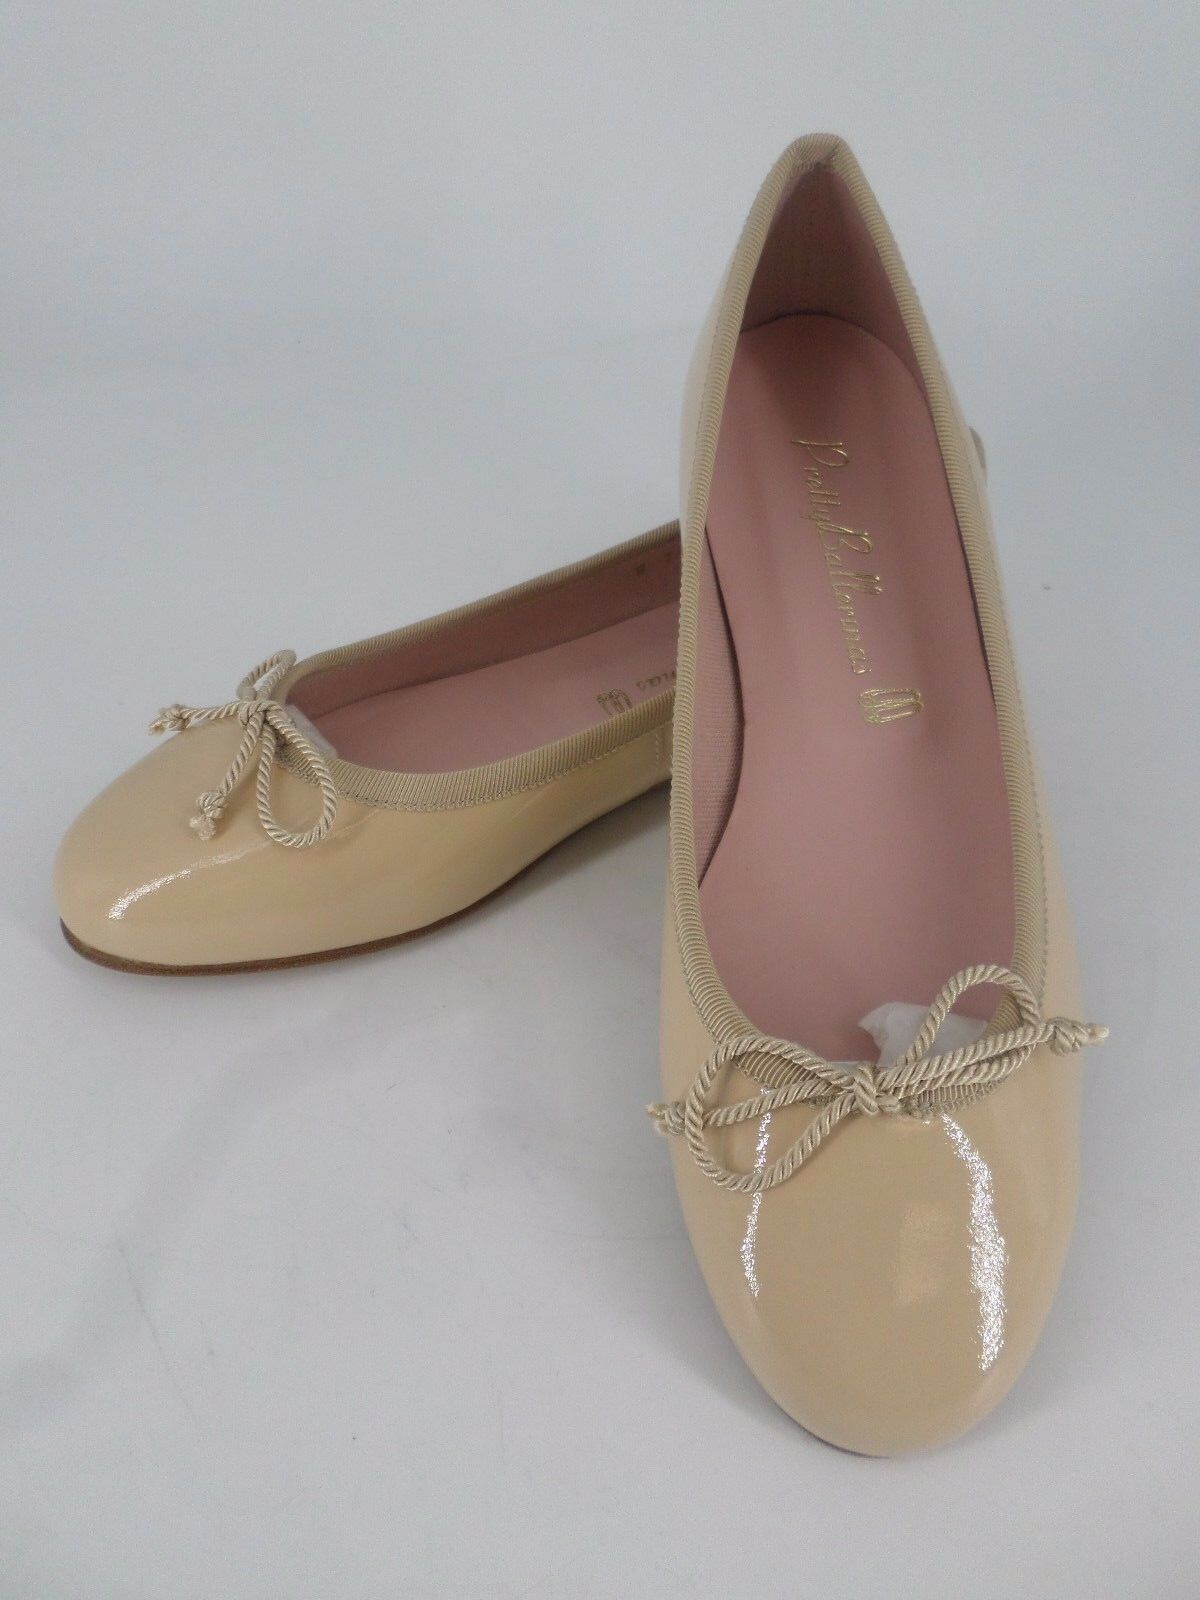 Pretty Ballerinas Marilyn Leather Patent schuhe Nude UK 3 EU 36 LN19 53 SALEs